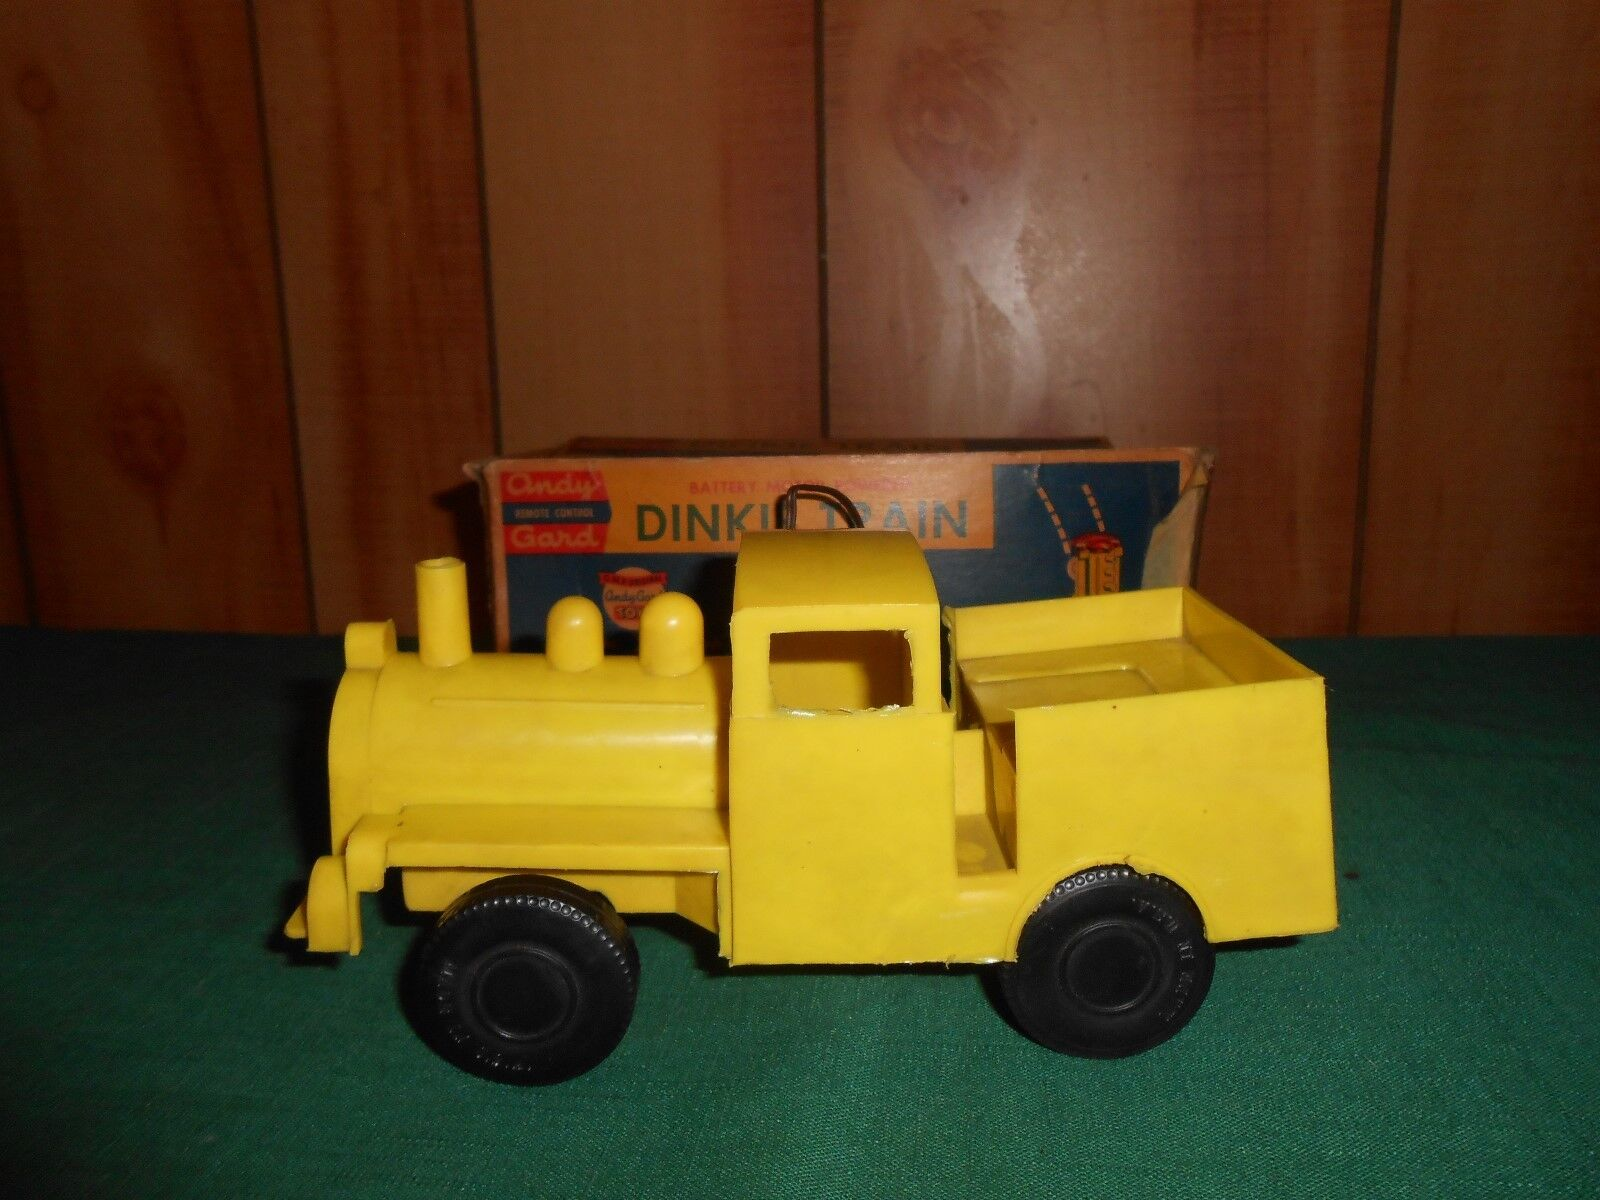 Vintage Andy Gard Dinkie Train With Original Display Box -RARE Battery Op